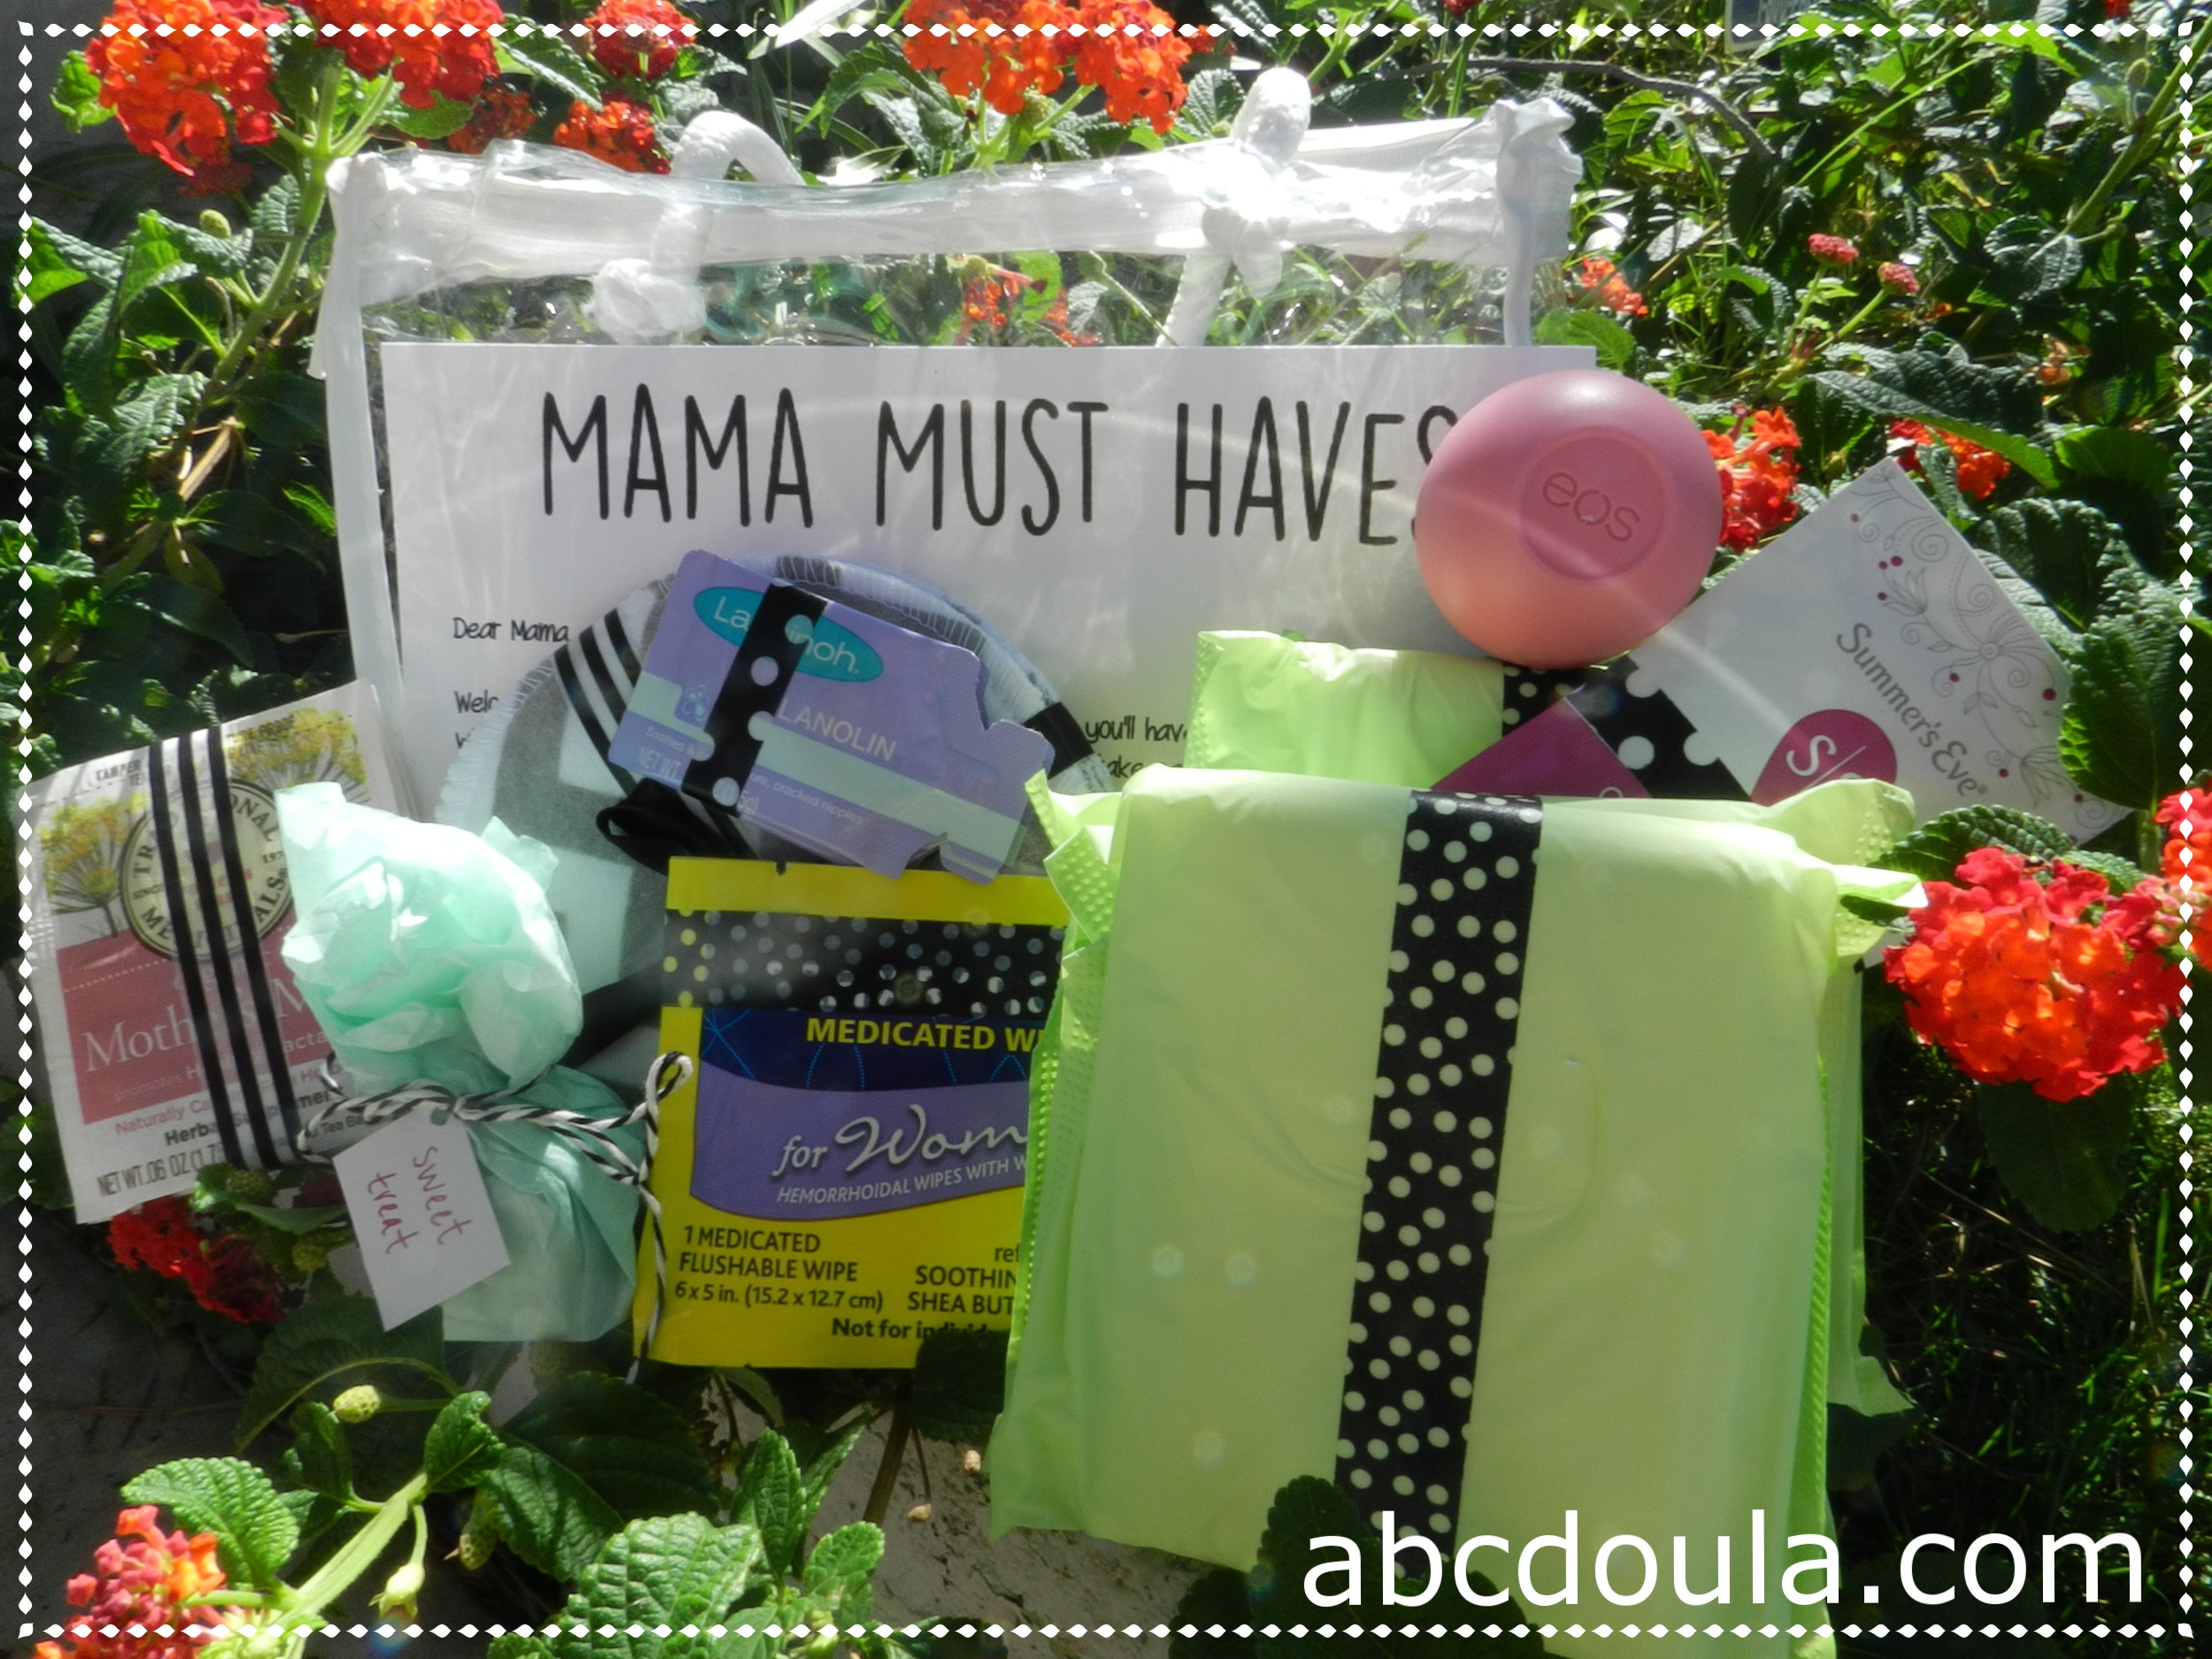 Package of care products for brand new moms sent right to a new mom's door.